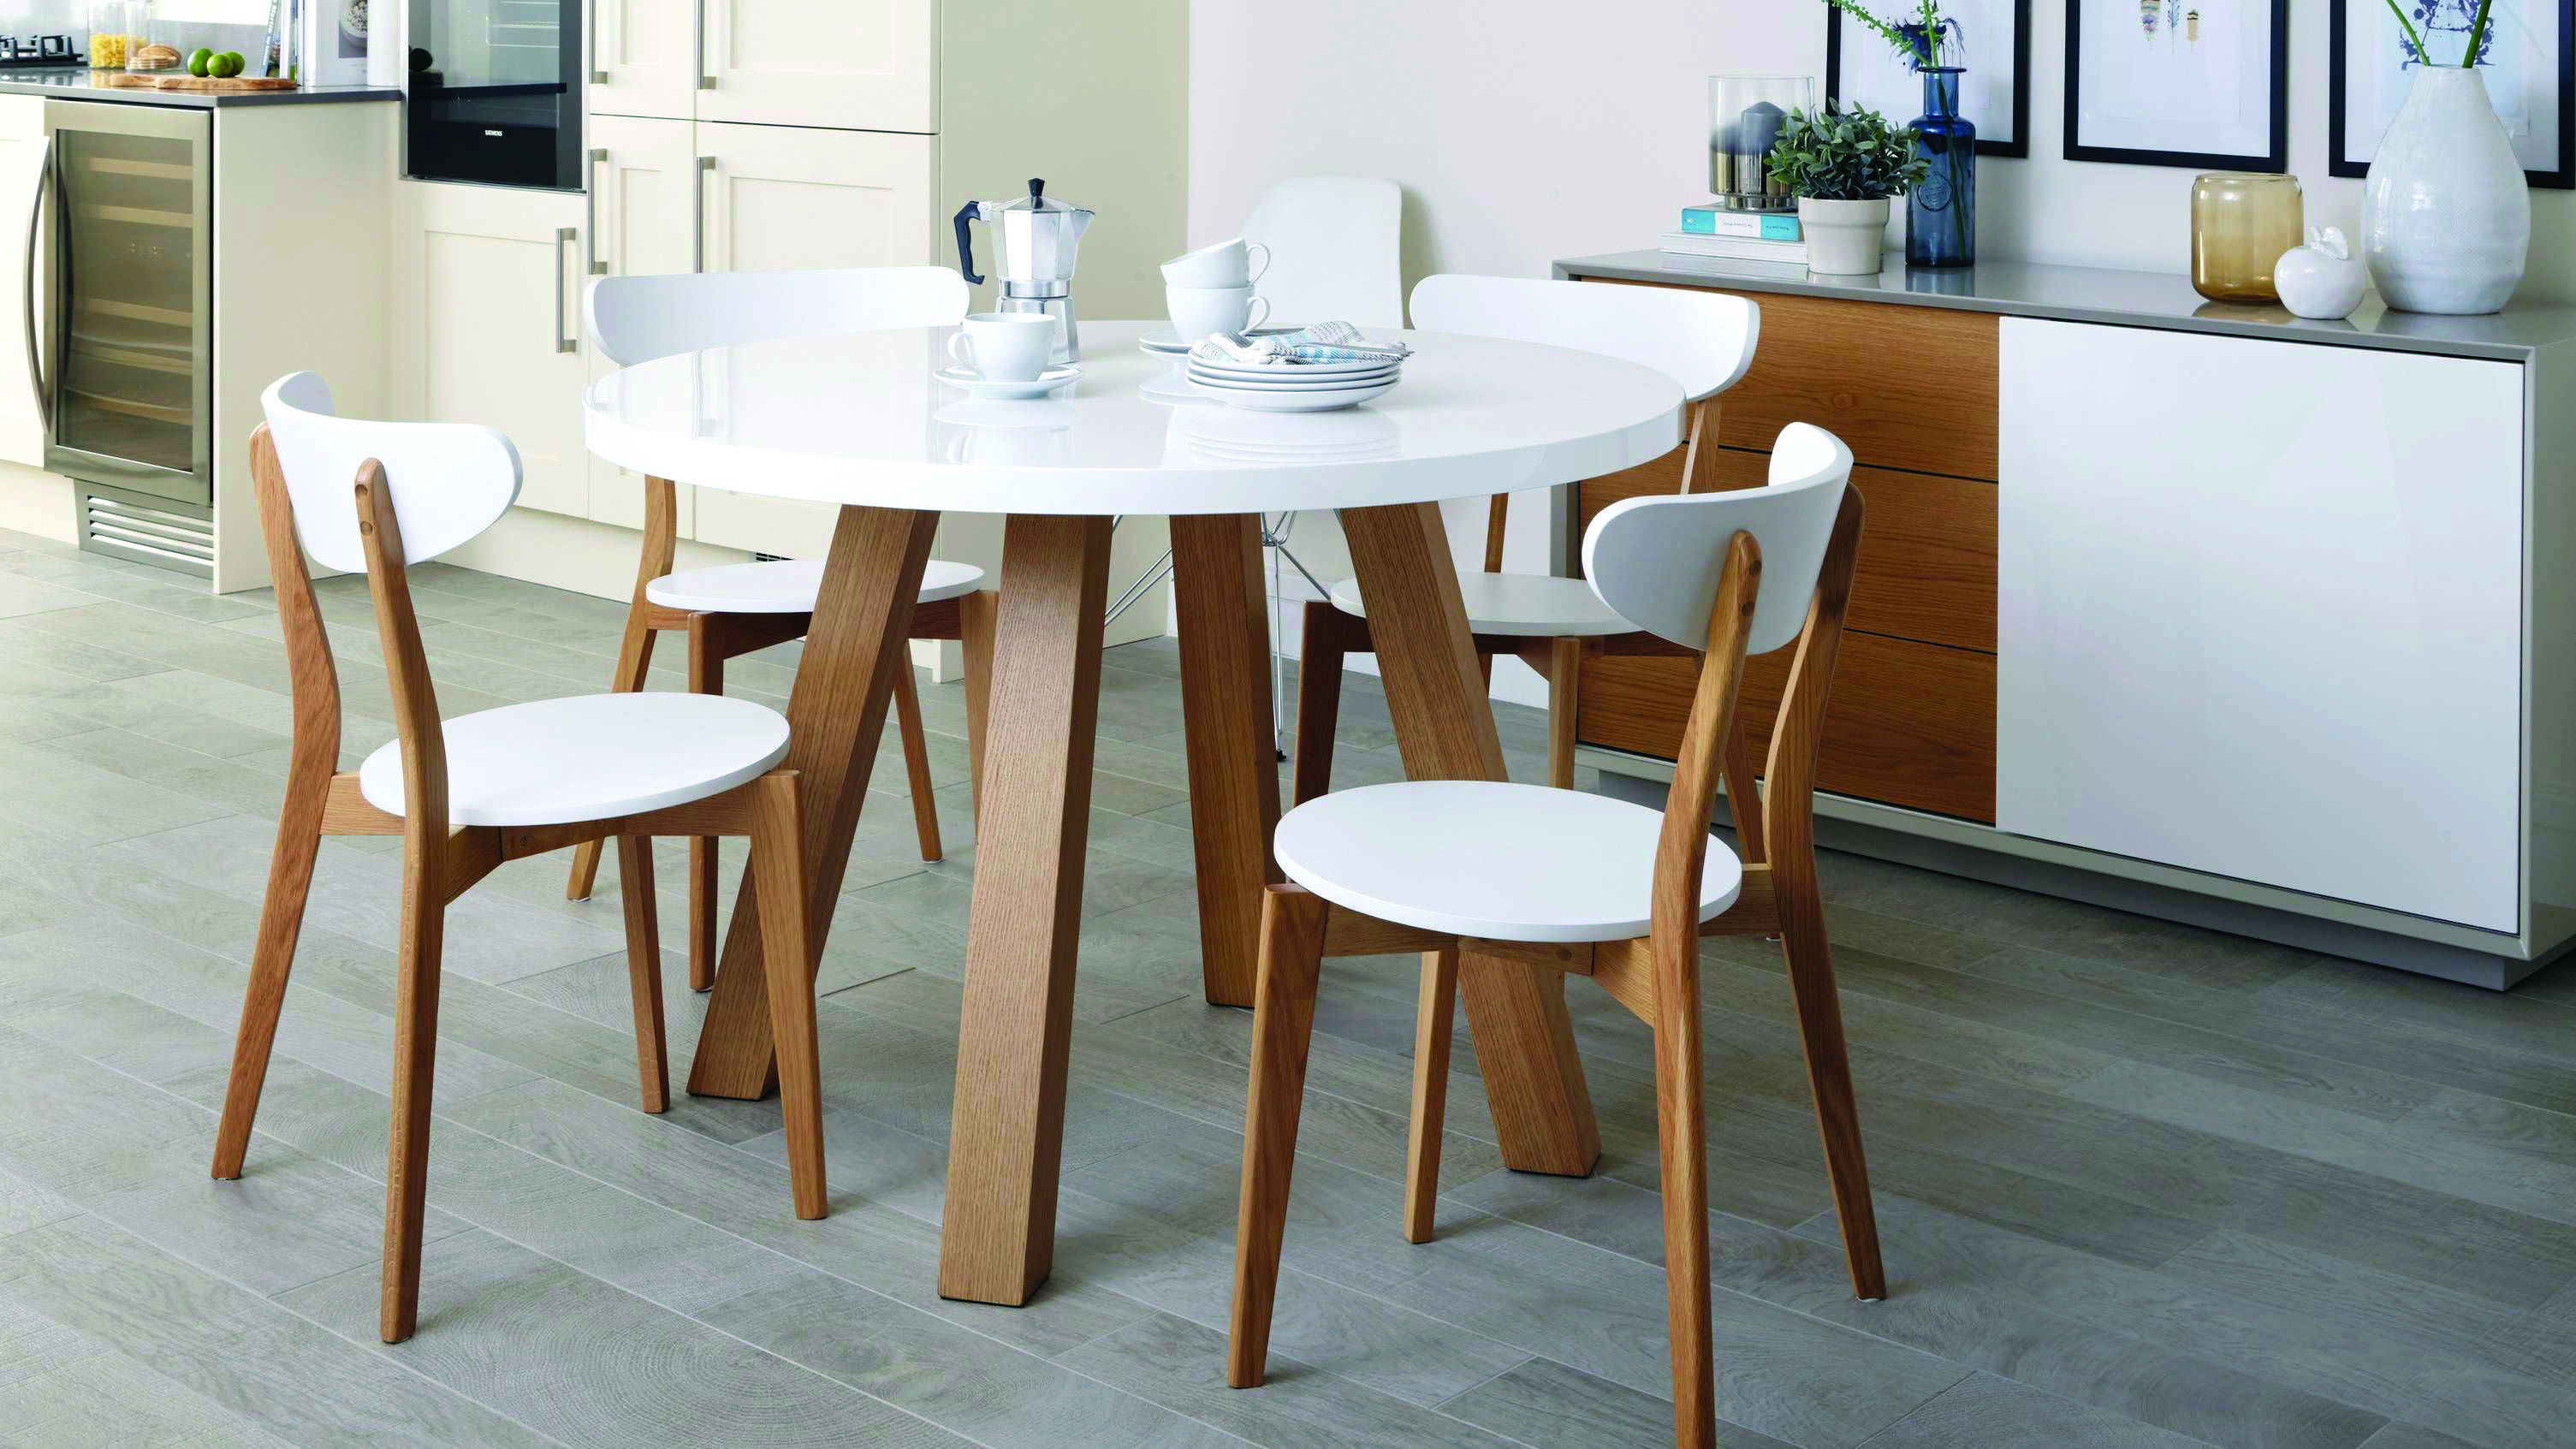 8 Small Cooking Area Table Suggestions For Your Property Homes Tre White Round Dining Table Kitchen Table Settings White Round Kitchen Table